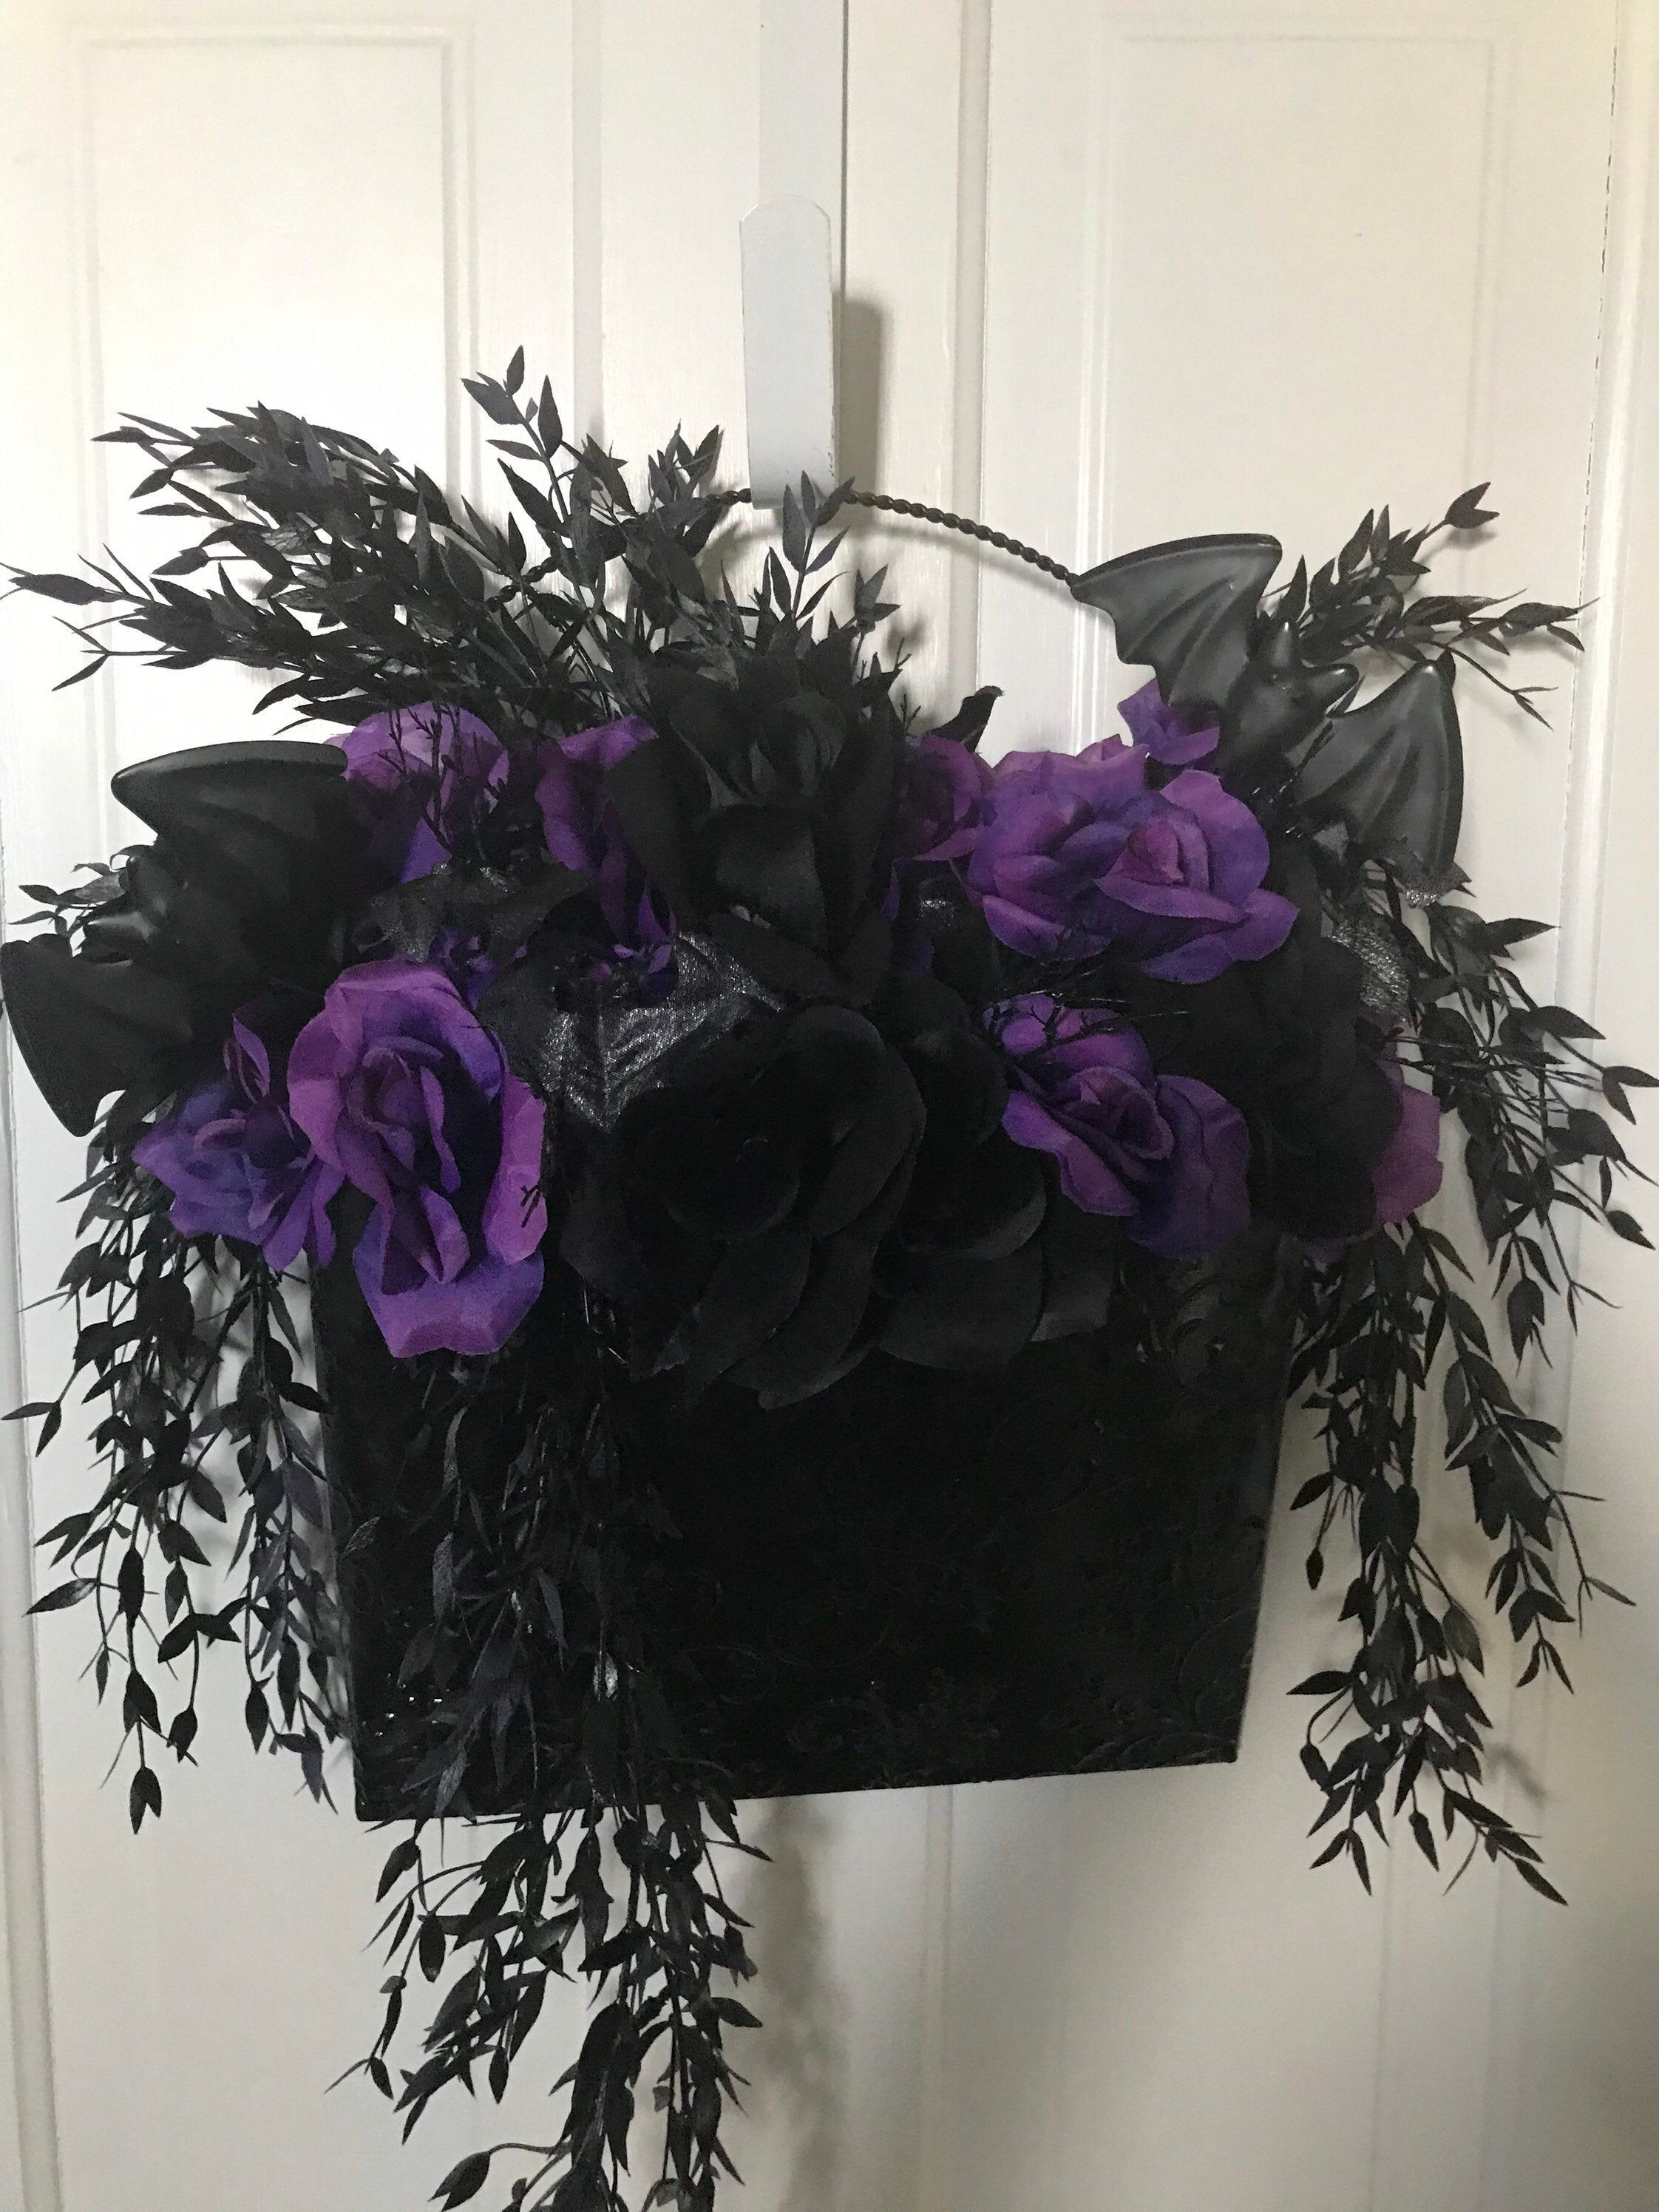 Photo of Creepy Gothic floral, large wall pocket, gone batty decor, gothic home decor wall pocket black and purple, roses & bats